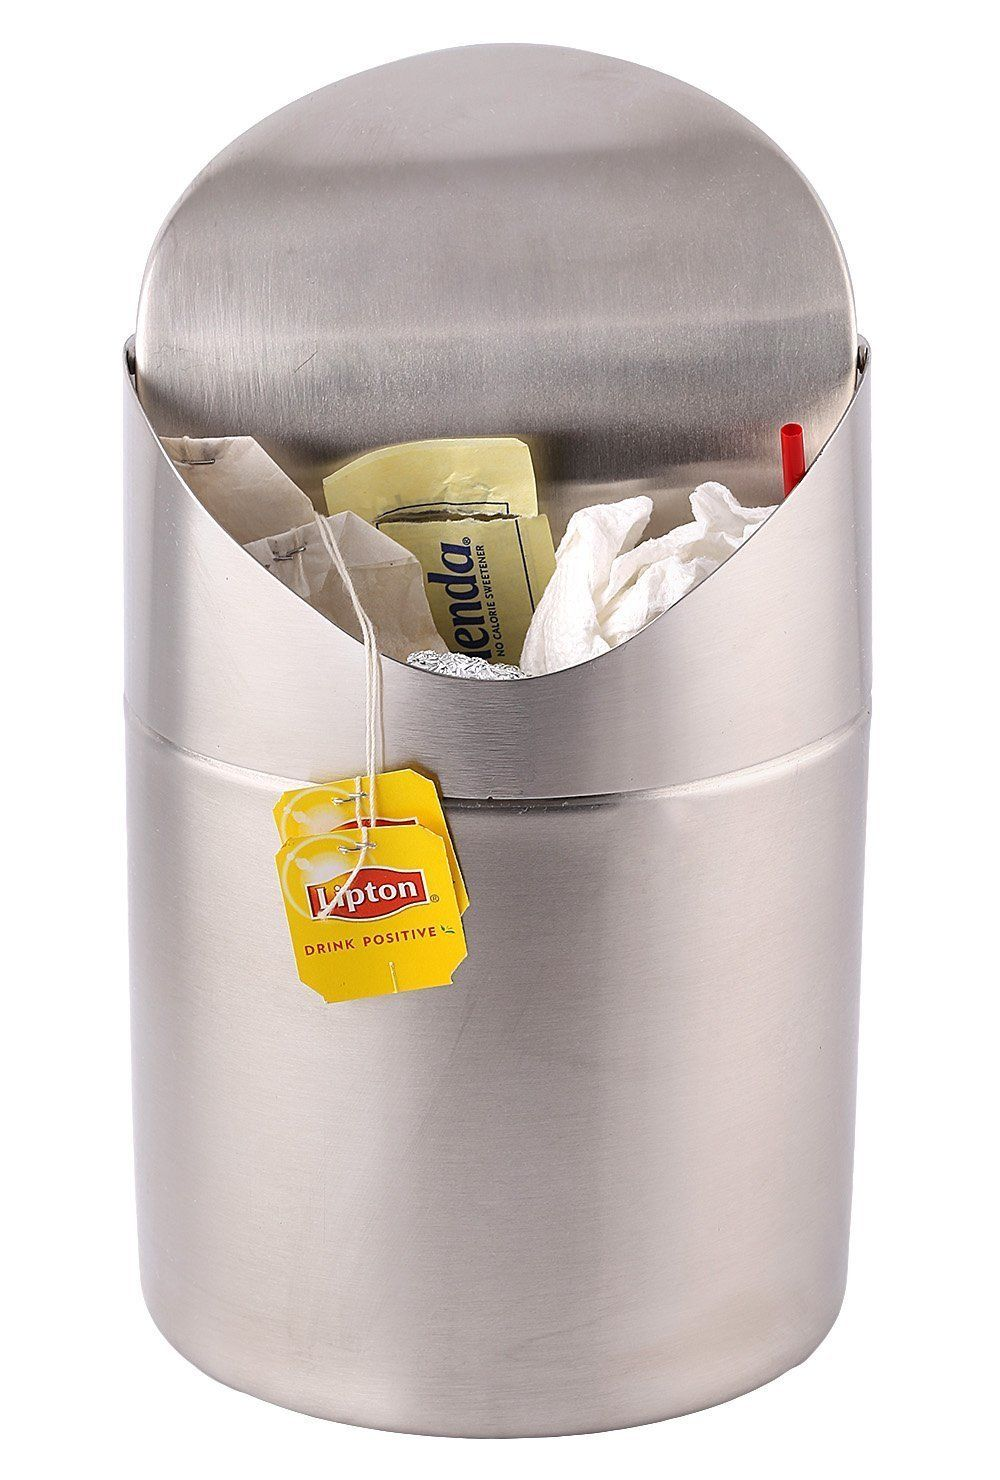 kitchen trash cans amazon blogs workanyware co uk u2022 rh blogs workanyware co uk